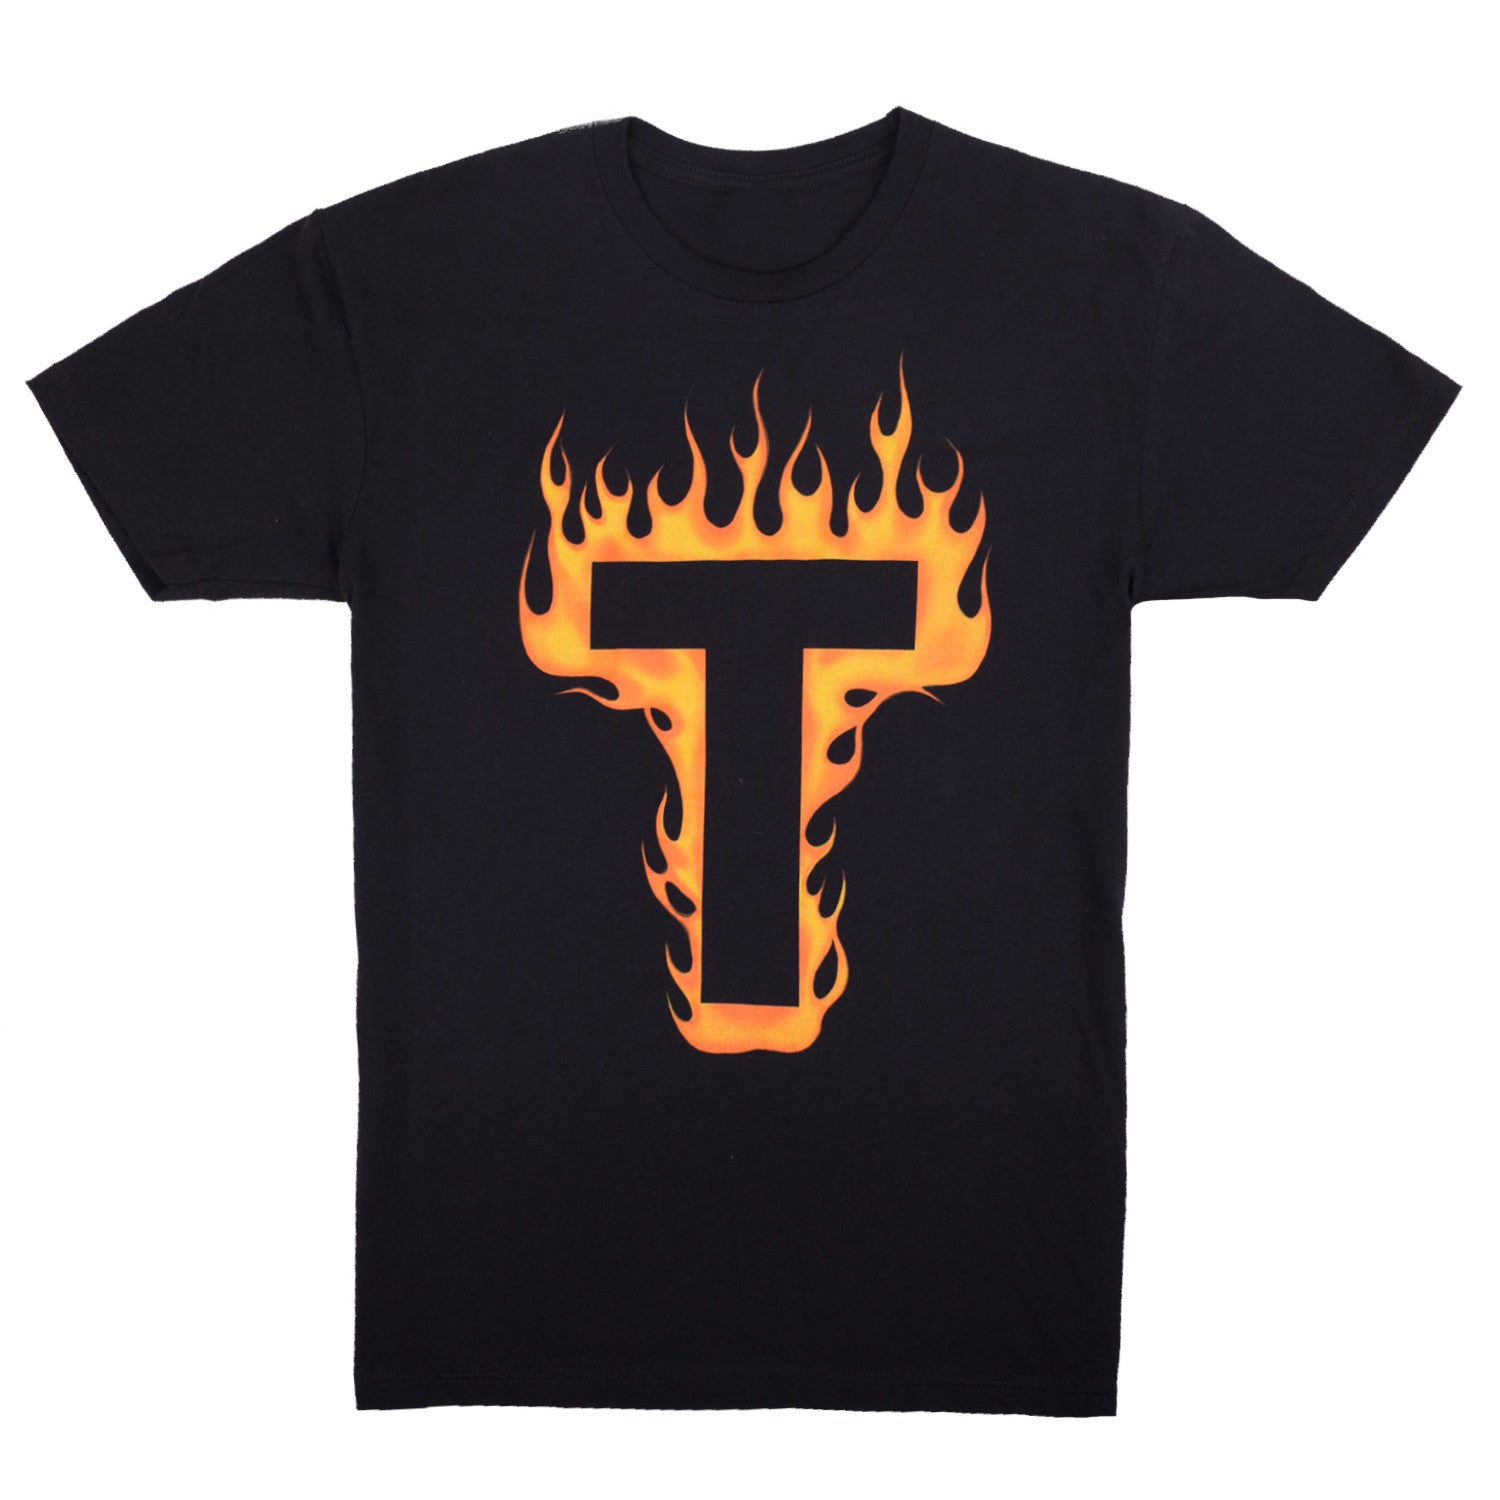 'Flames' T-Shirt - Black